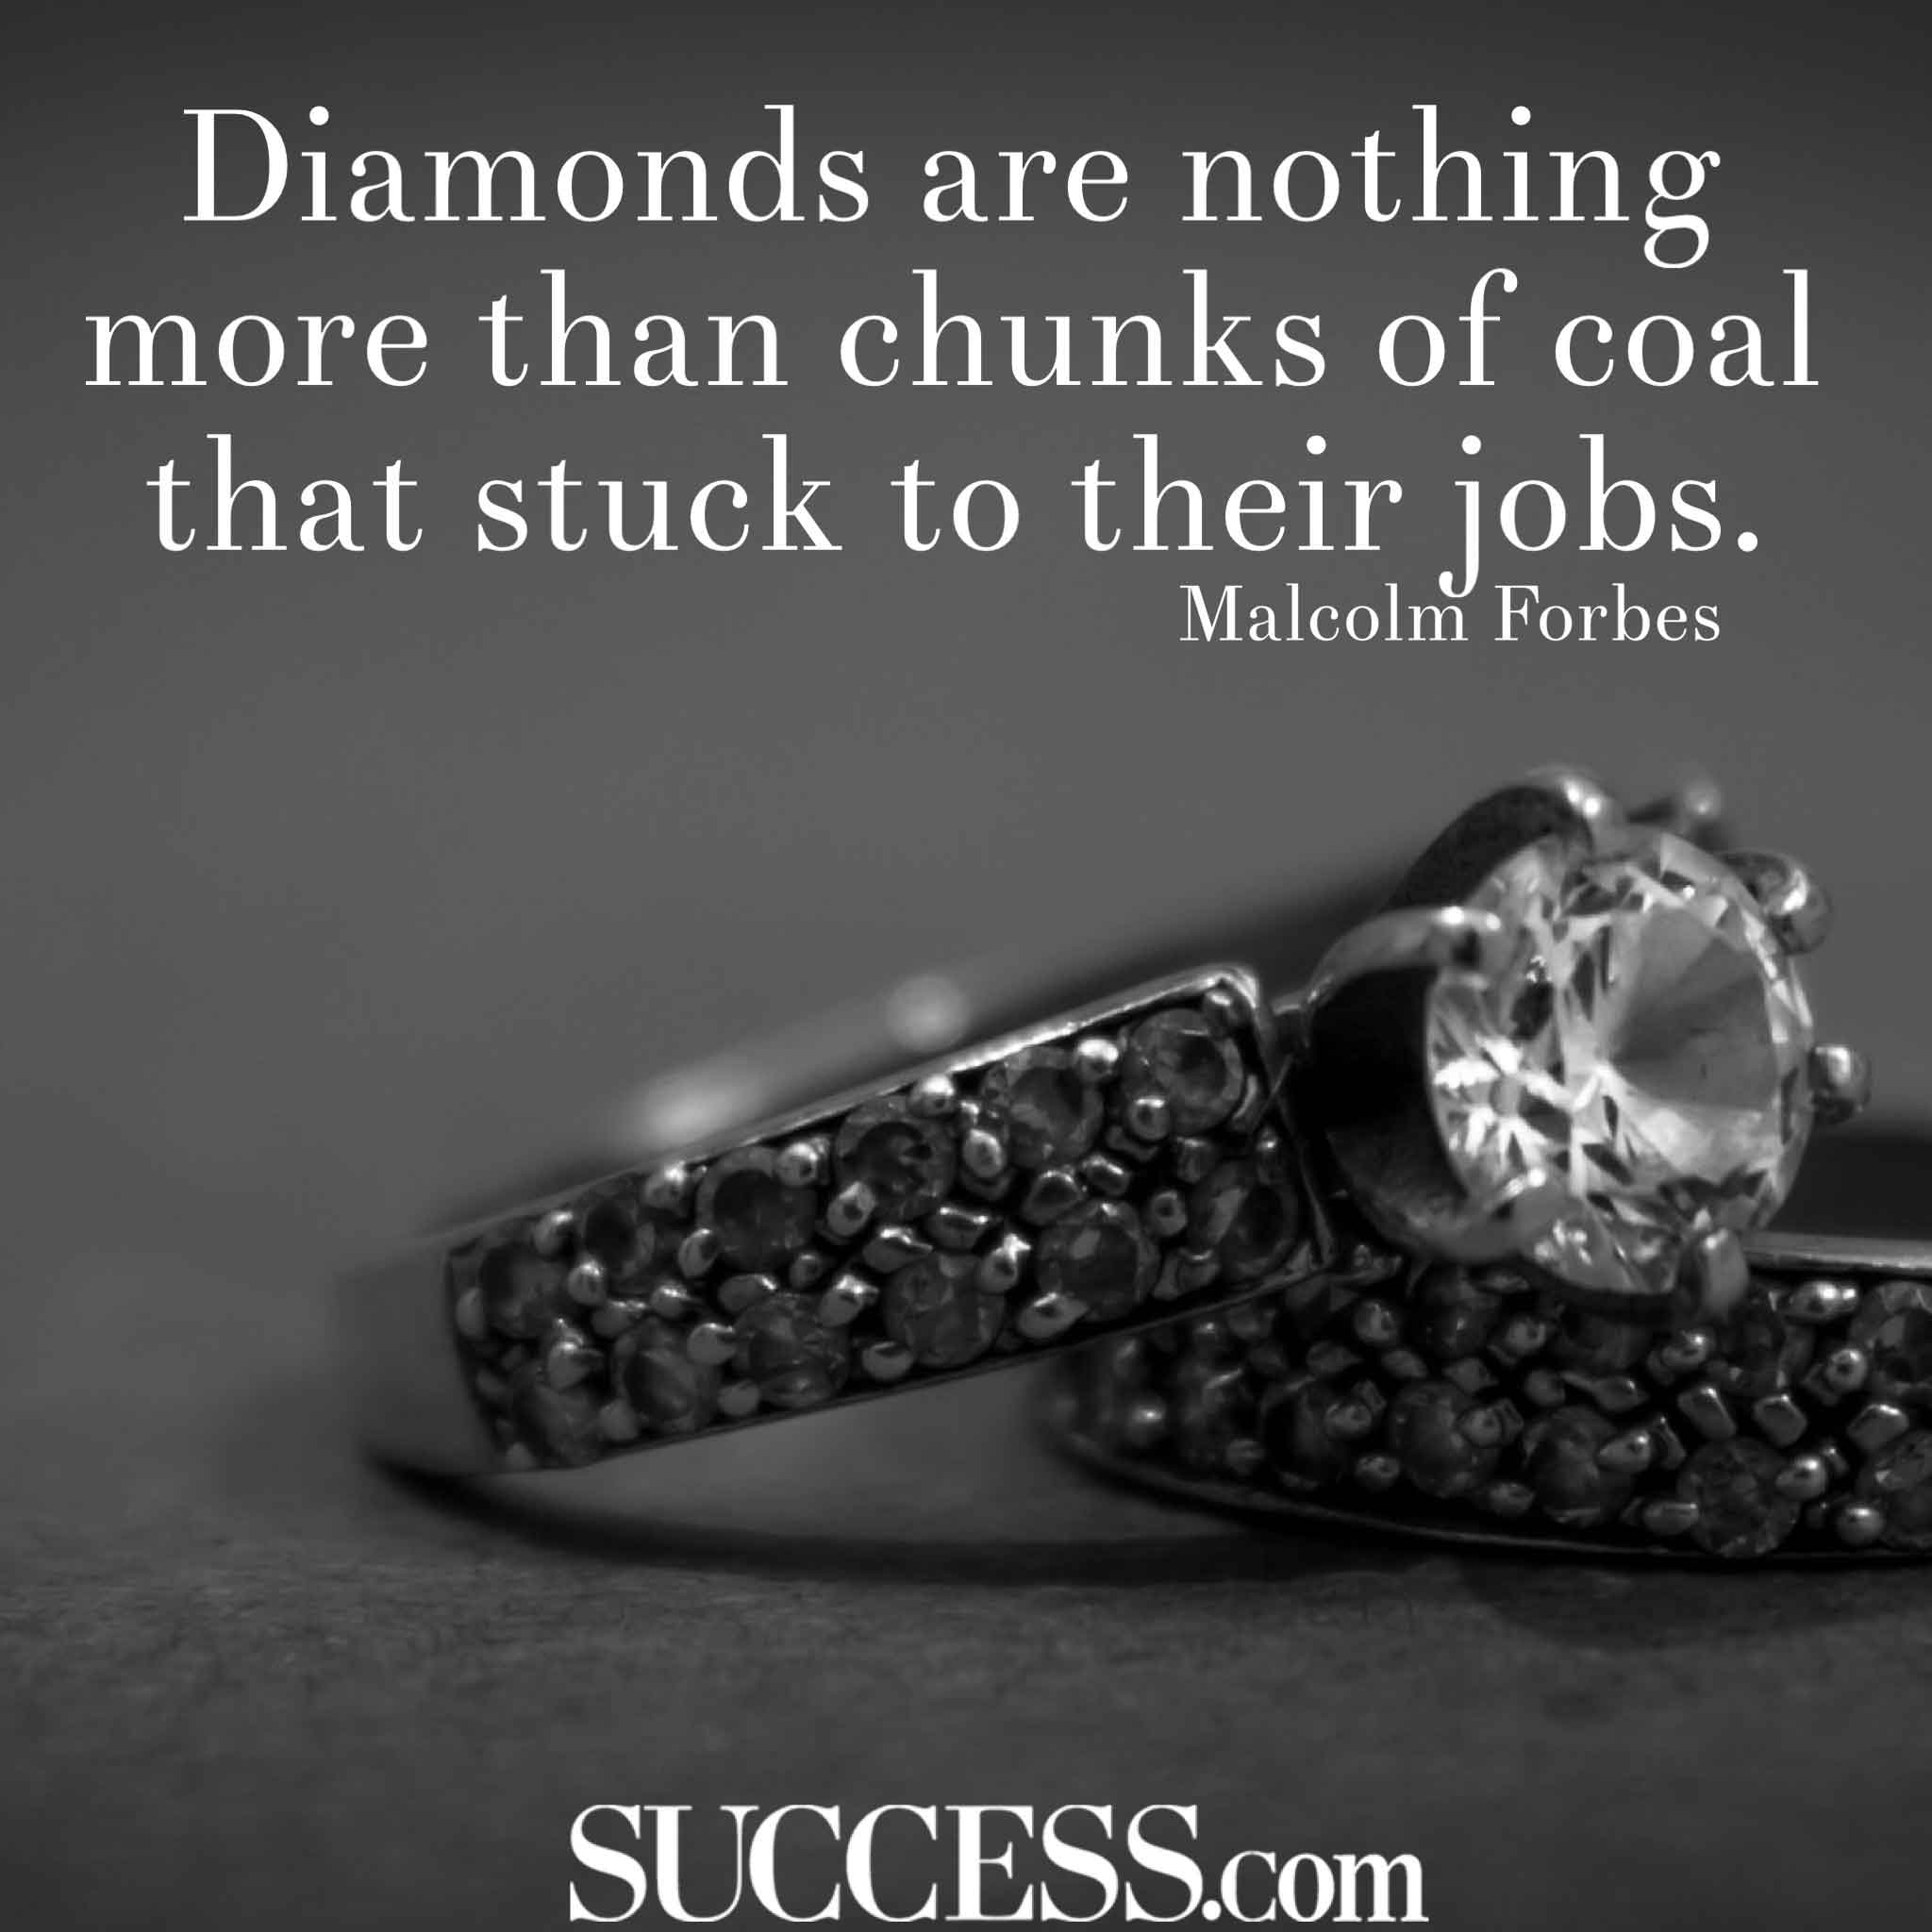 Quotes About Work: Diamonds Are Nothing More Than Chunks Of Coal That Stuck